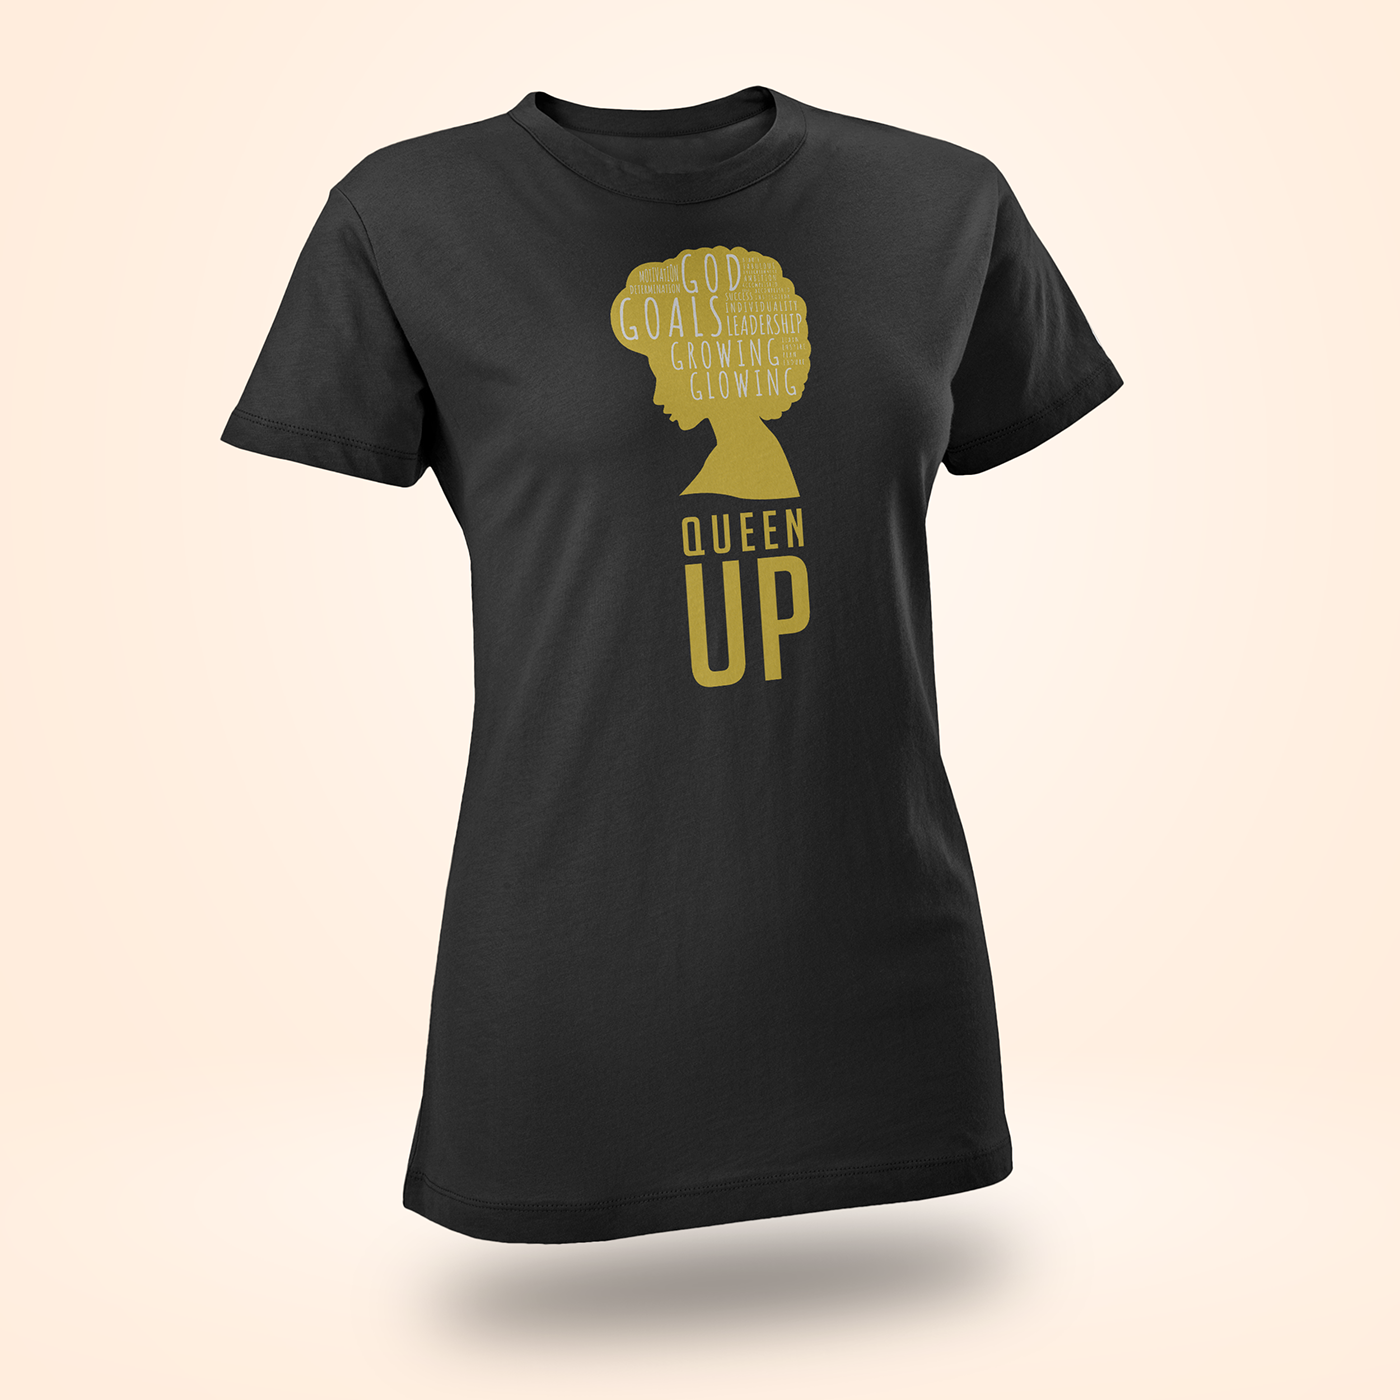 a5d27746e Custom T-Shirts - Design Your Own T Shirts at UberPrints